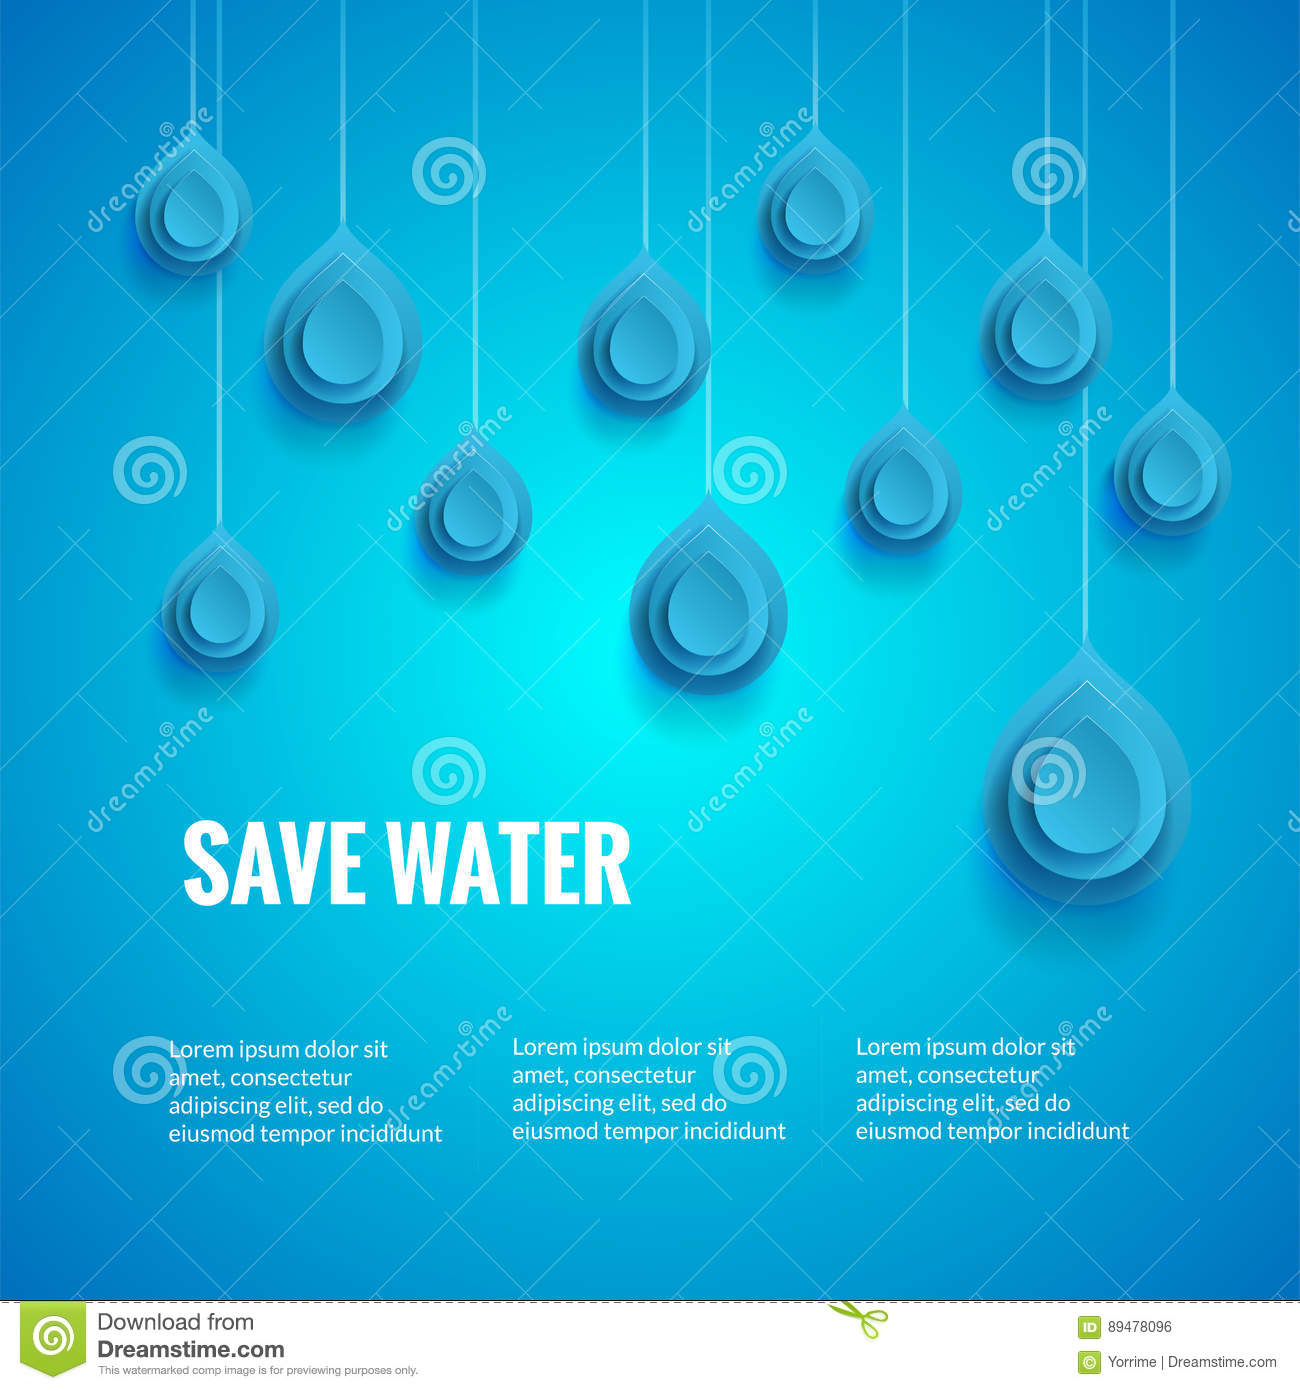 Poster design on save water - Eco Design Template Save The Water Poster Blue Background With Drop Shape Wor